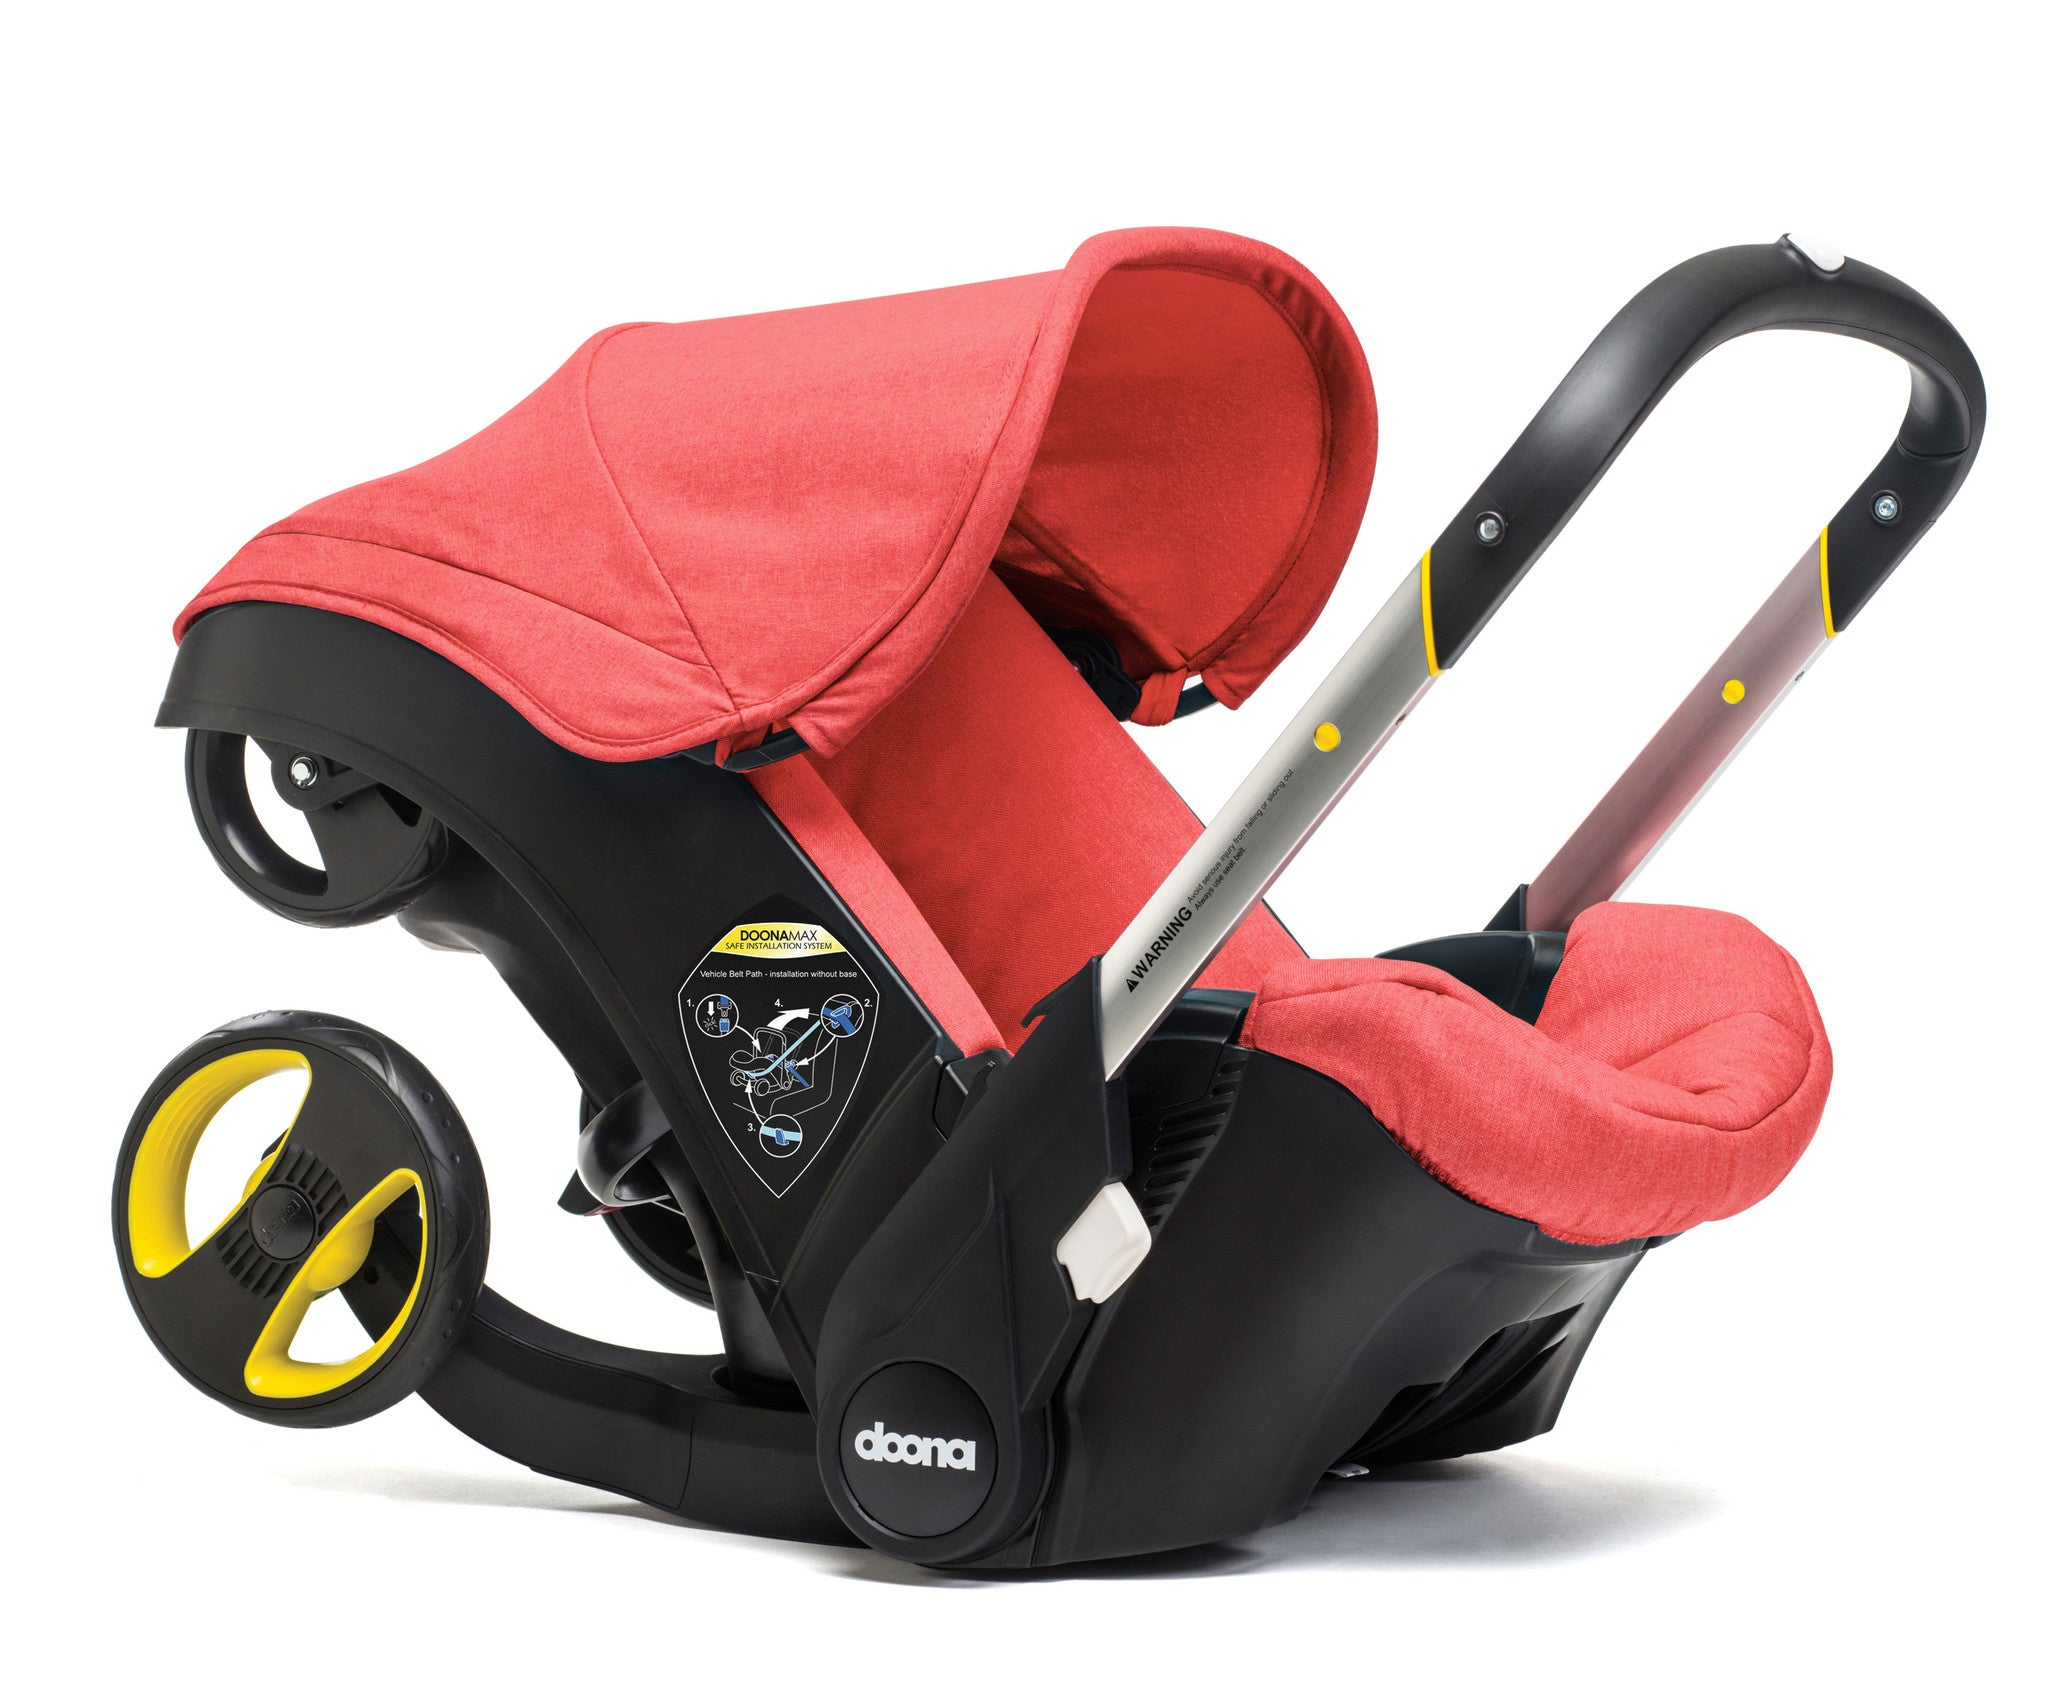 Doona Car Seat Stroller for Sale - Price